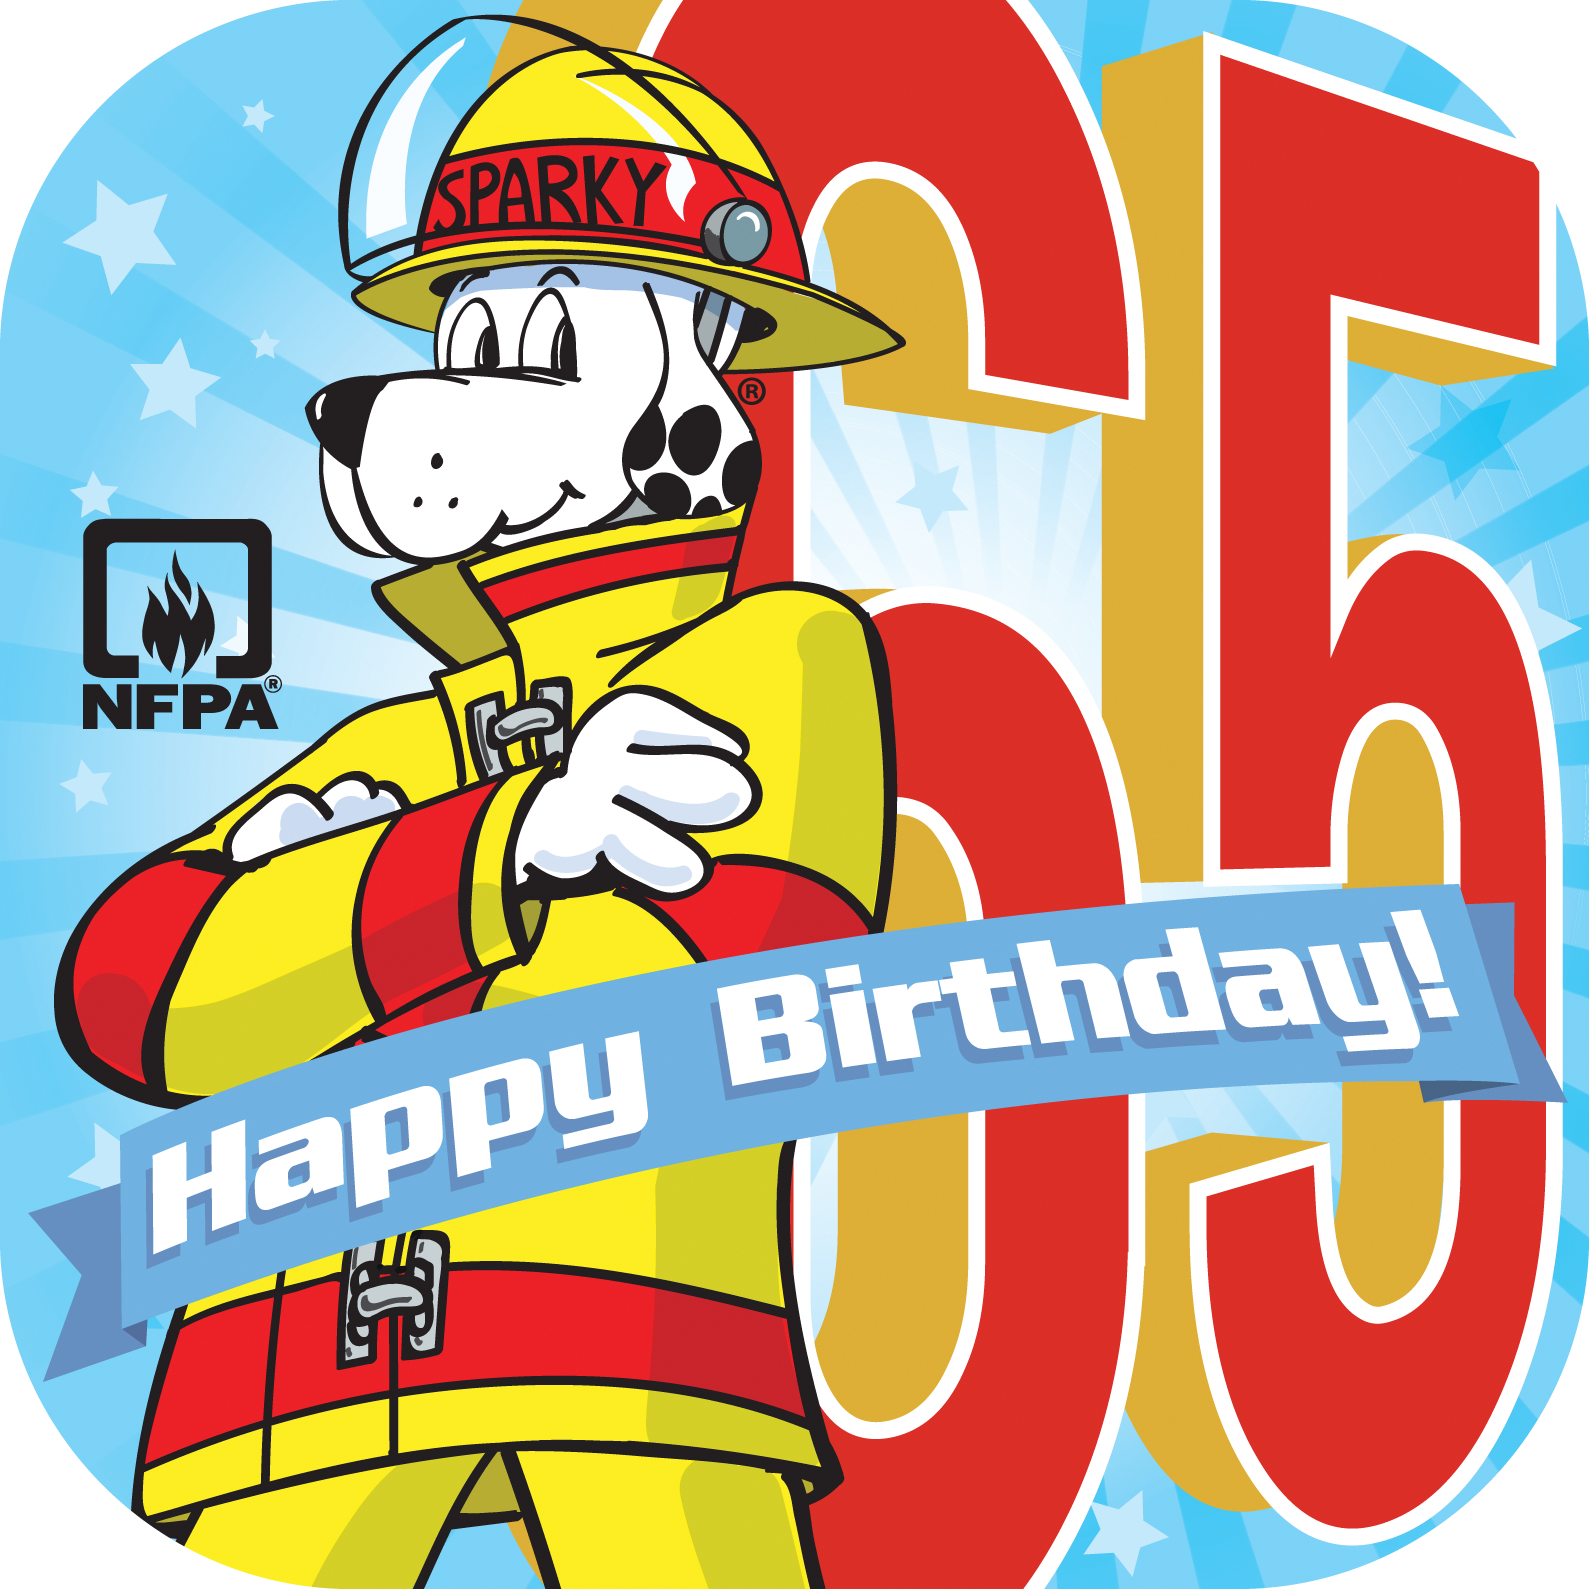 Join Our Thunderclap To Wish Sparky The Fire Dog A Happy Birthday On March 18th Sparkys65th